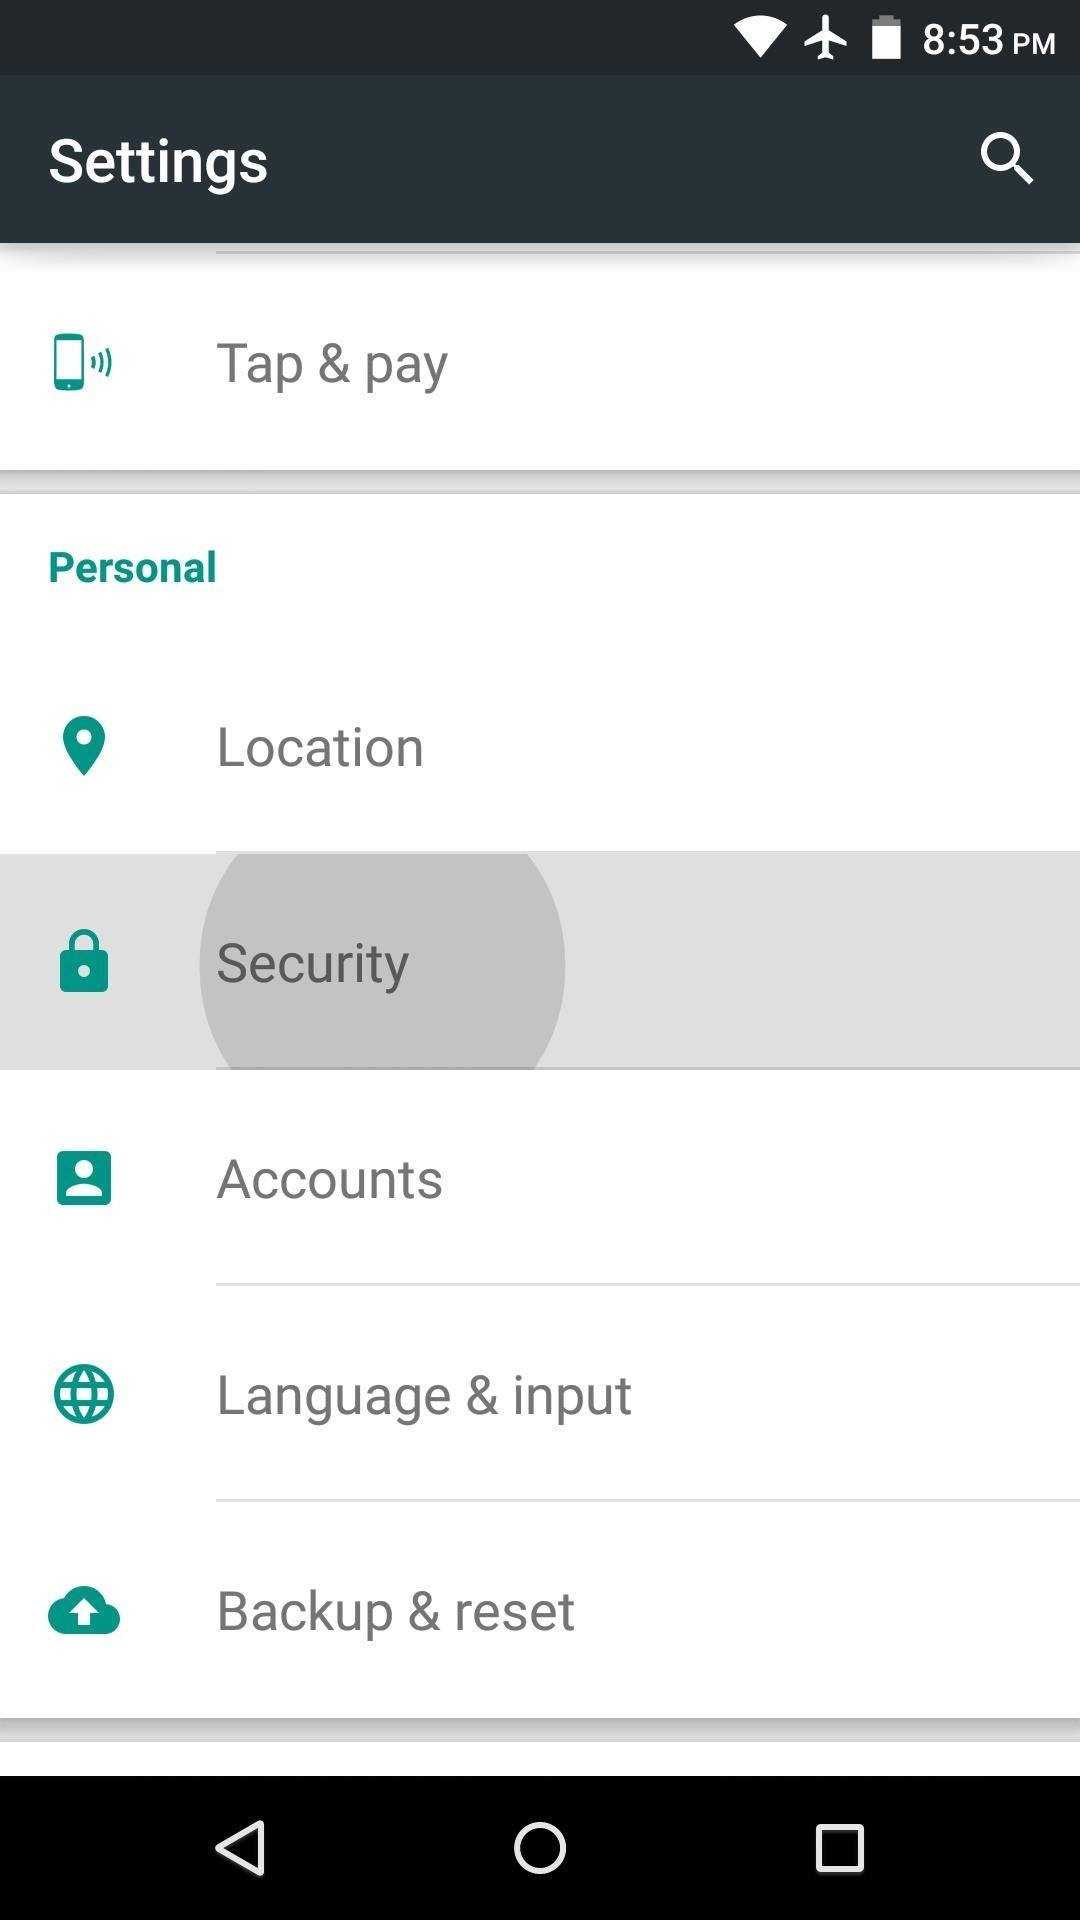 Android 101: How to Sideload Apps by Enabling 'Unknown Sources' or 'Install Unknown Apps'